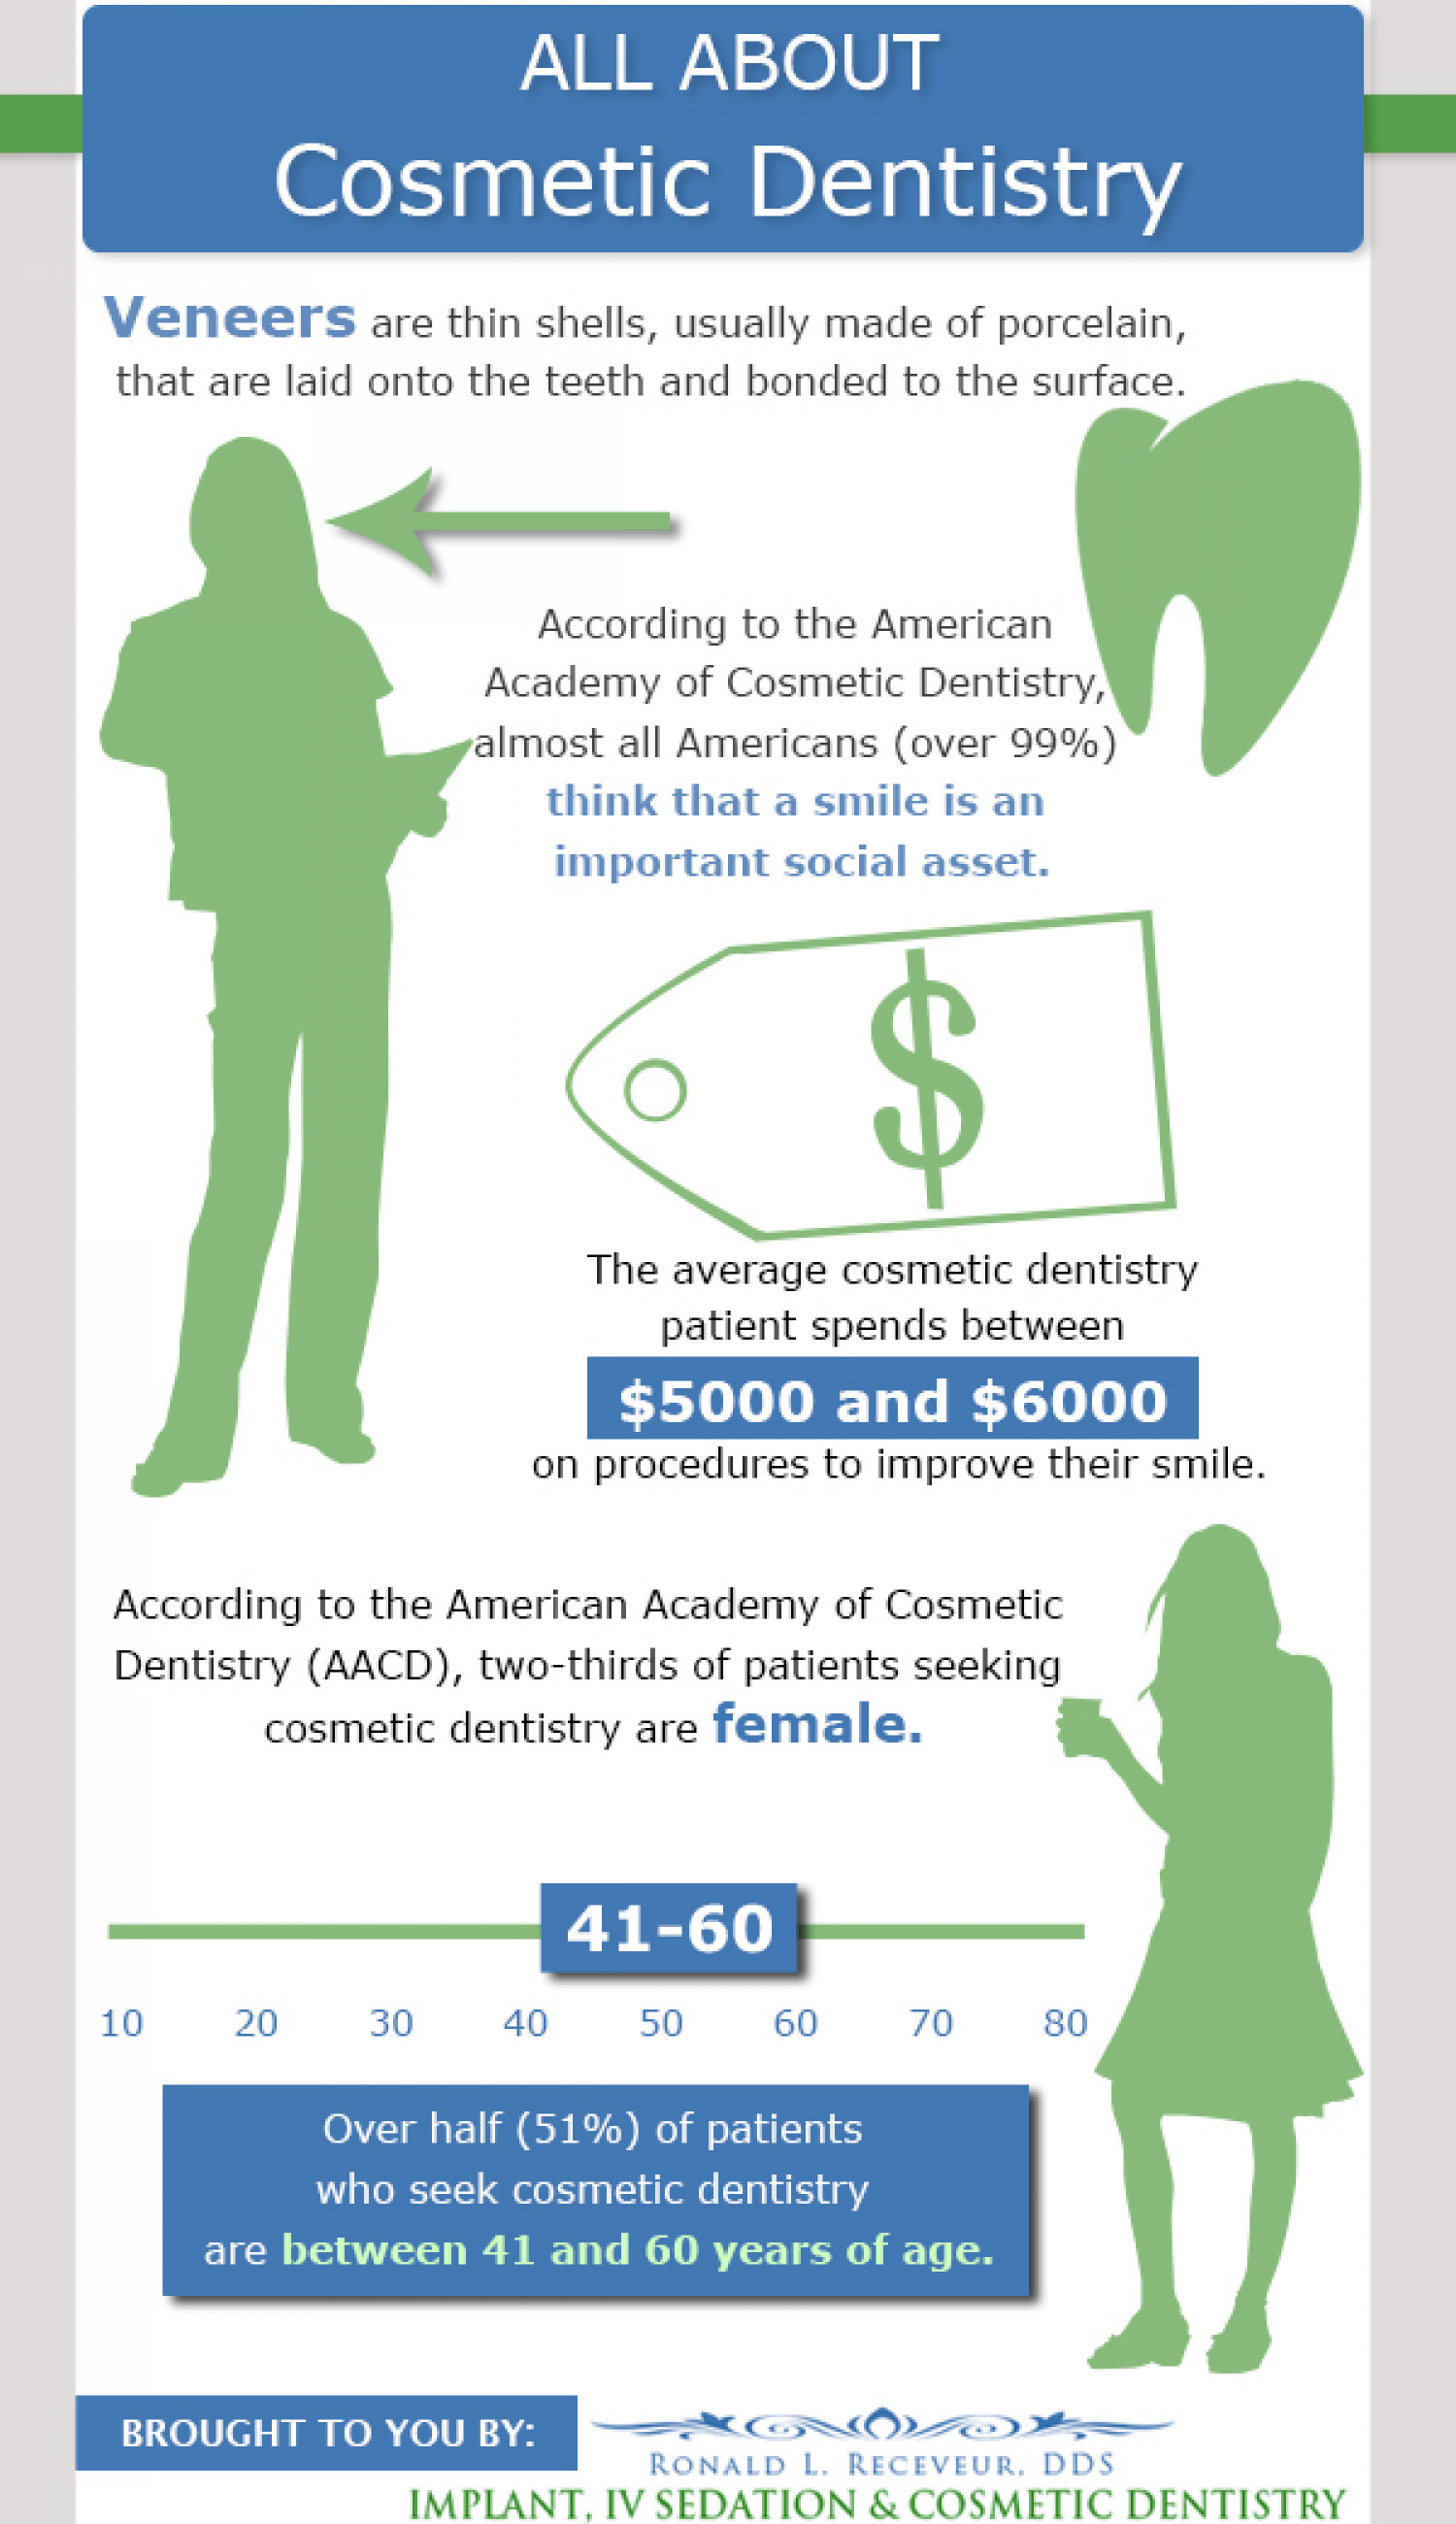 All About Cosmetic Dentistry Infographic